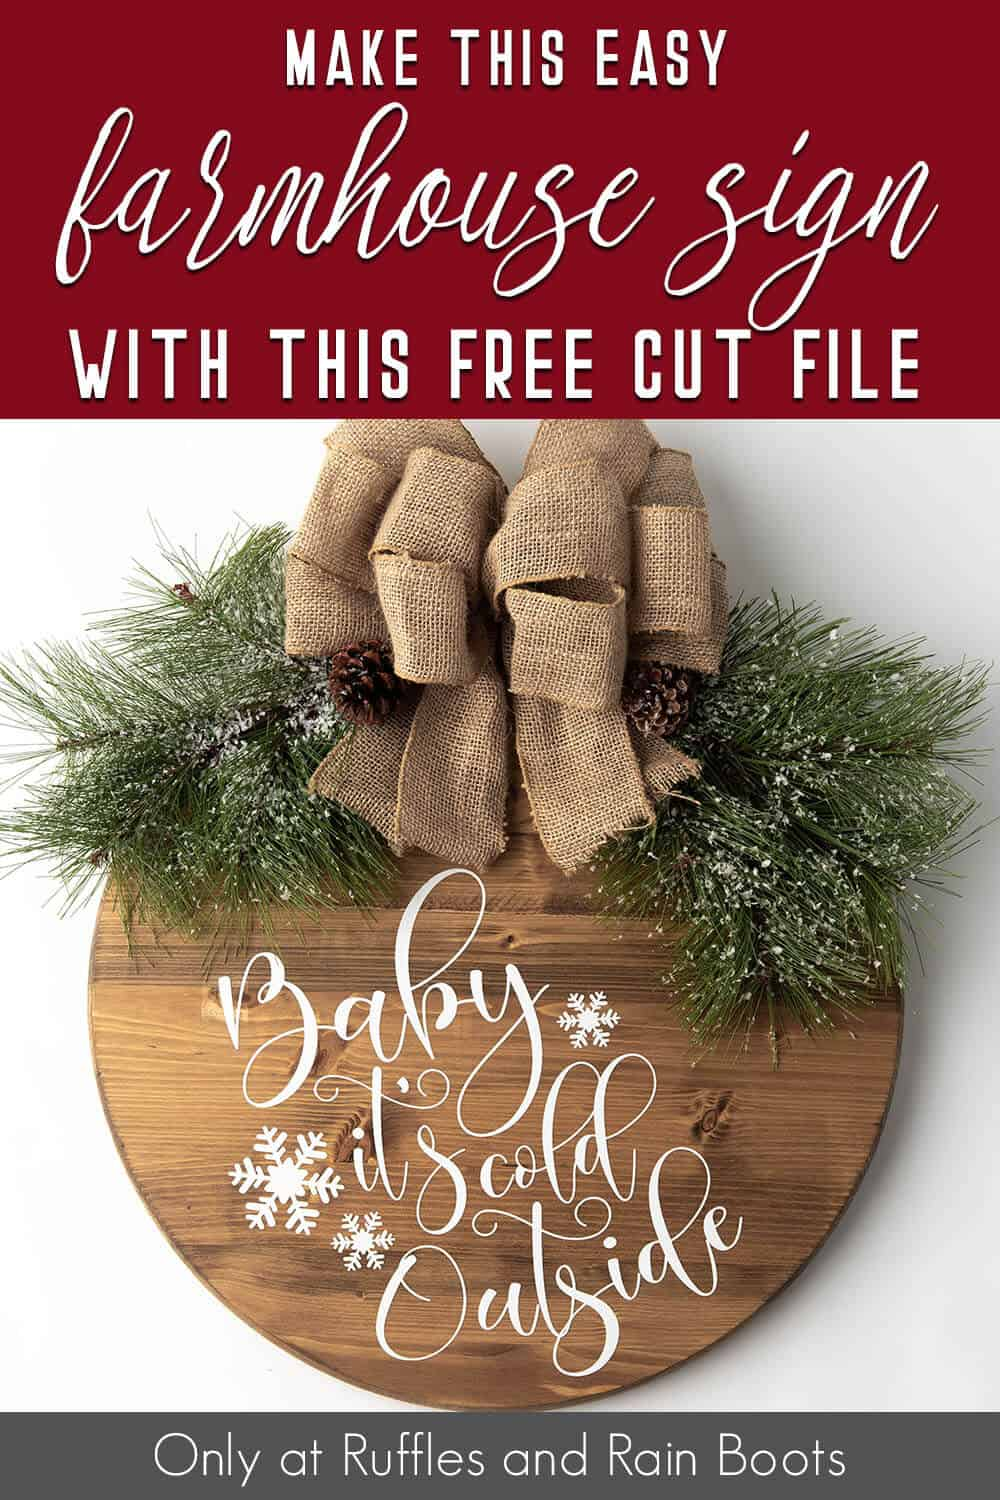 easy wood round farmhouse sign for christmas with text which reads make this easy farmhouse sign with this free cut file